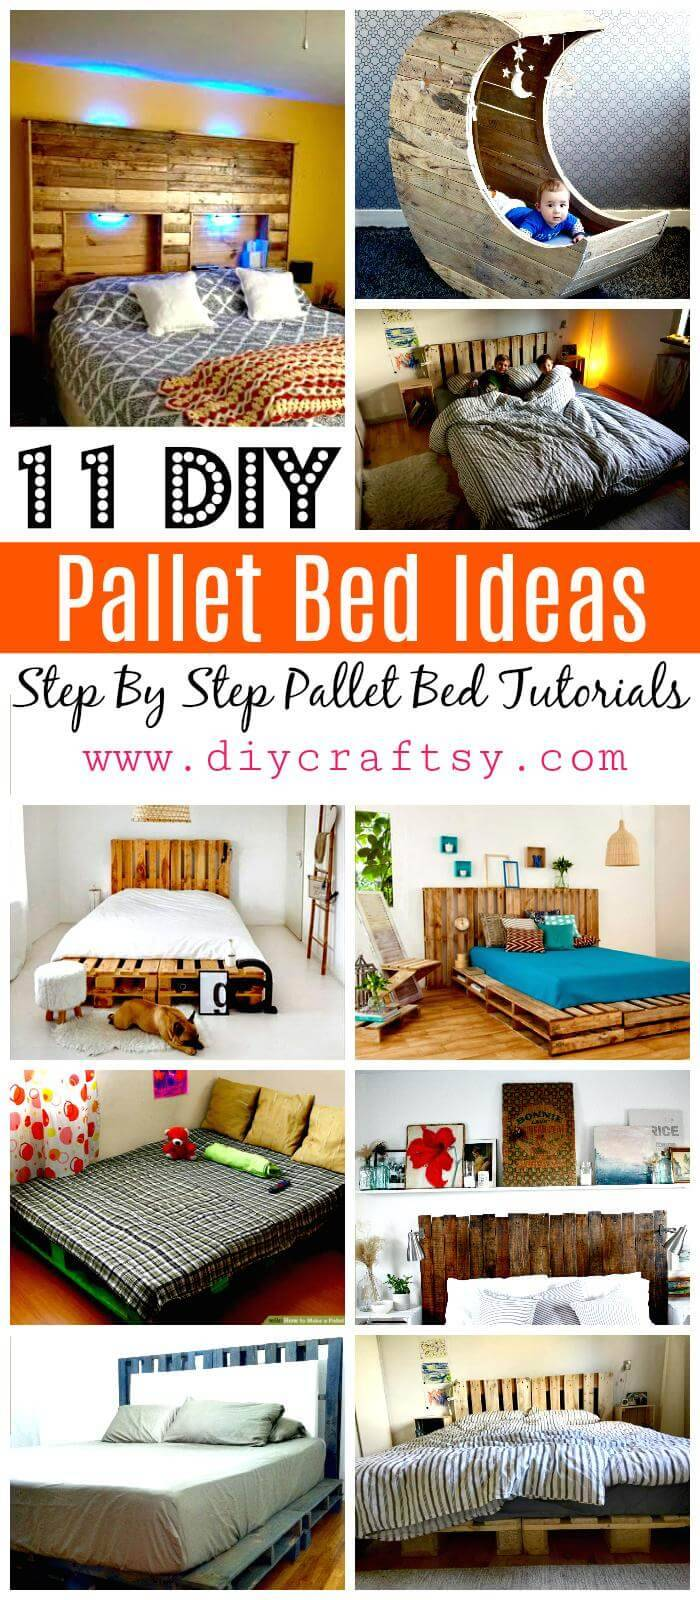 11 Pallet Bed Ideas - Step By Step Pallet Bed Frame Tutorials - Pallet Furniture - Pallet Projects - DIY Pallet Ideas